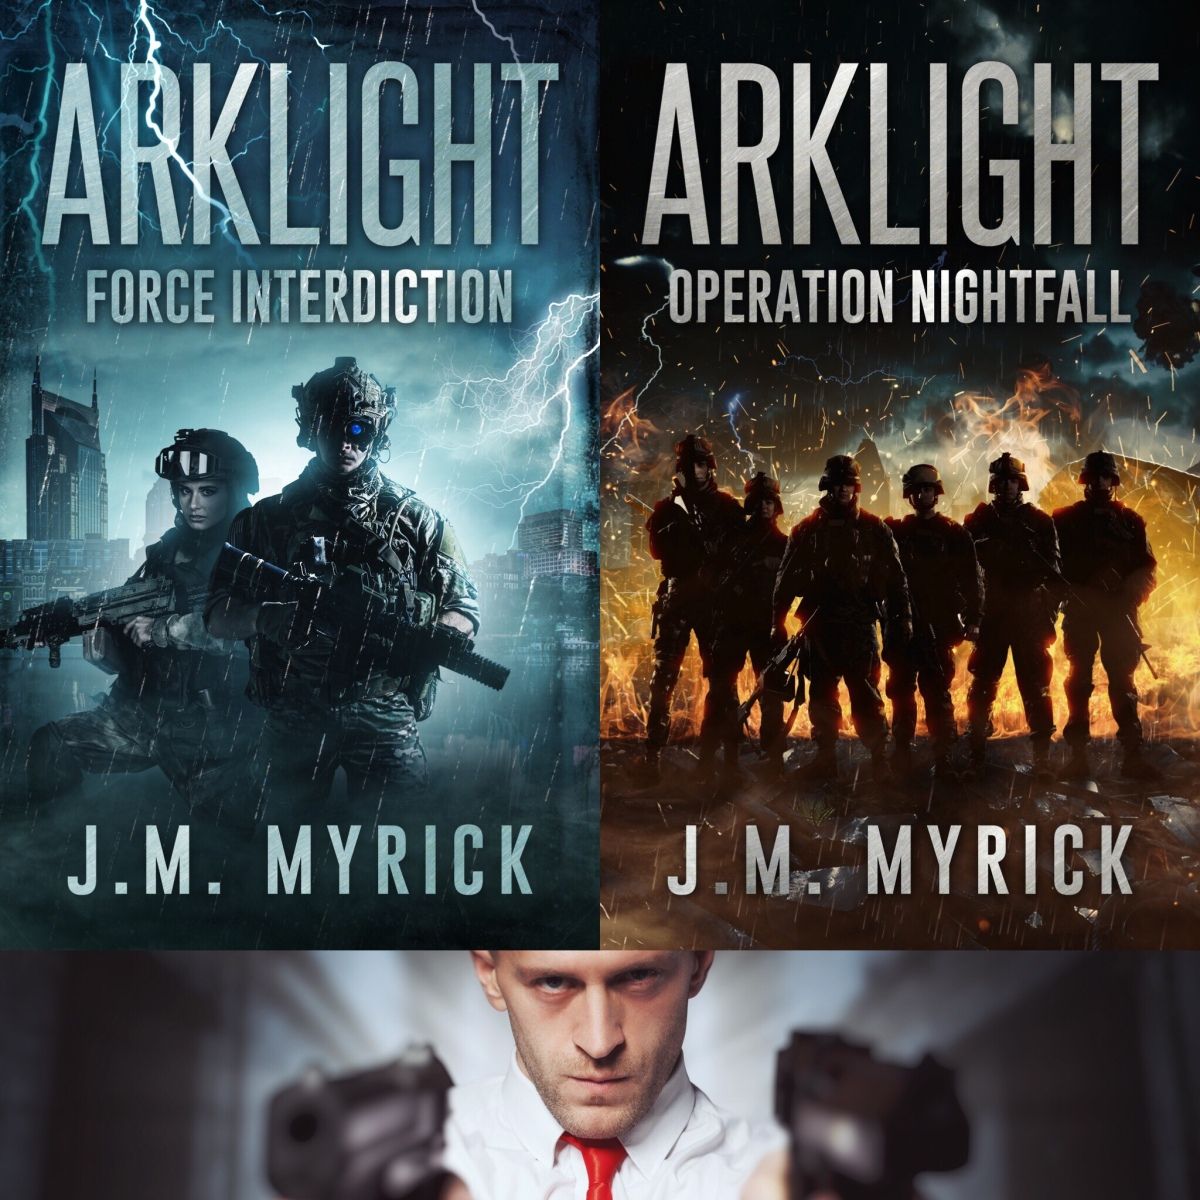 New features to Arklight